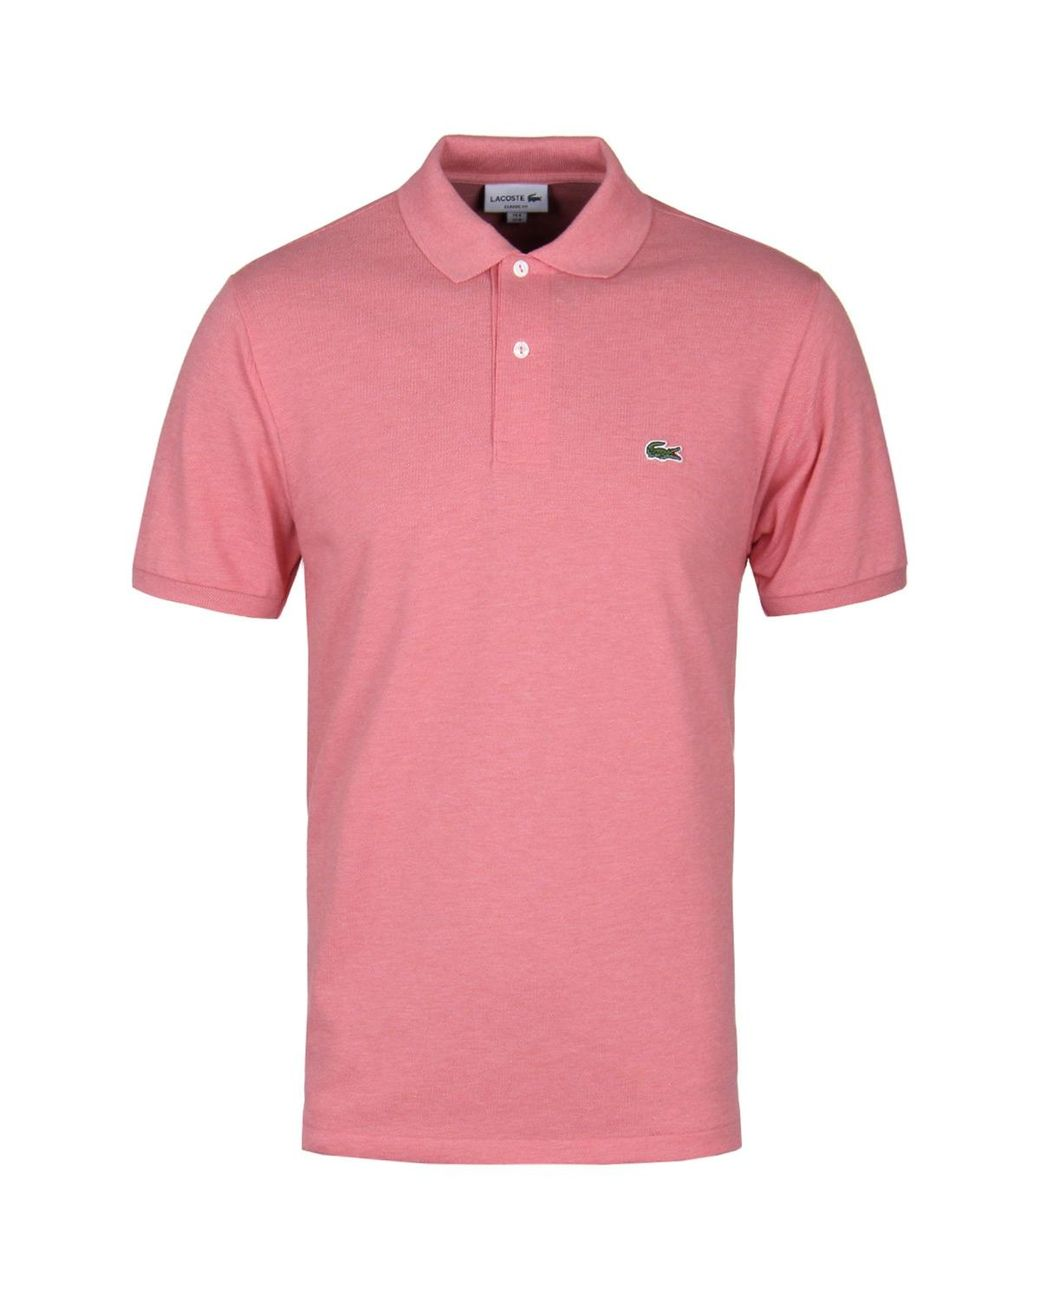 new product 32d2a 001a3 Lacoste Rosa Pink Marl Classic Fit Pique Polo Shirt in Pink ...